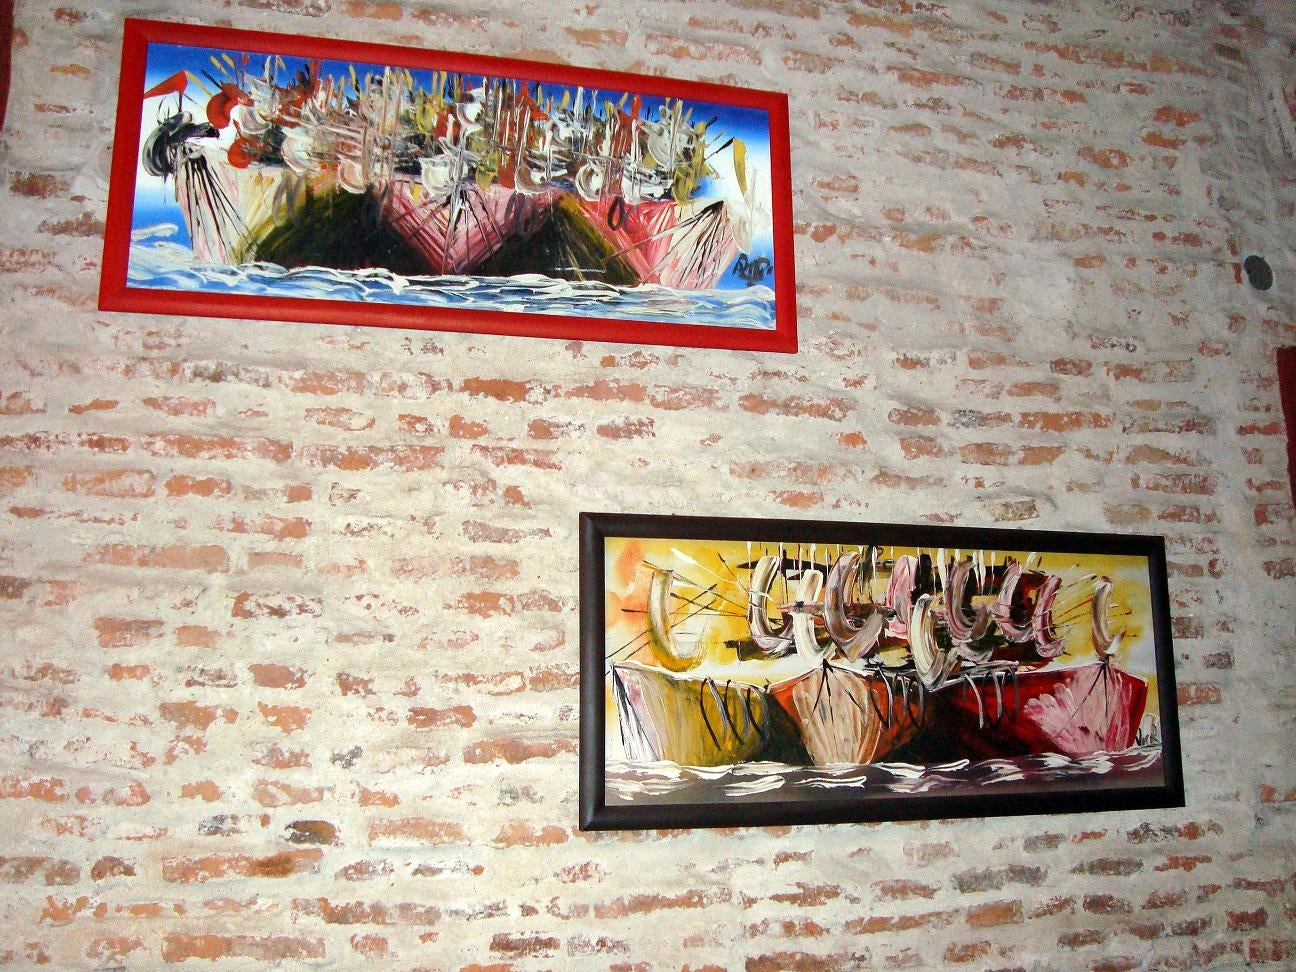 Pared en Napolitano. Pizza & Pastas